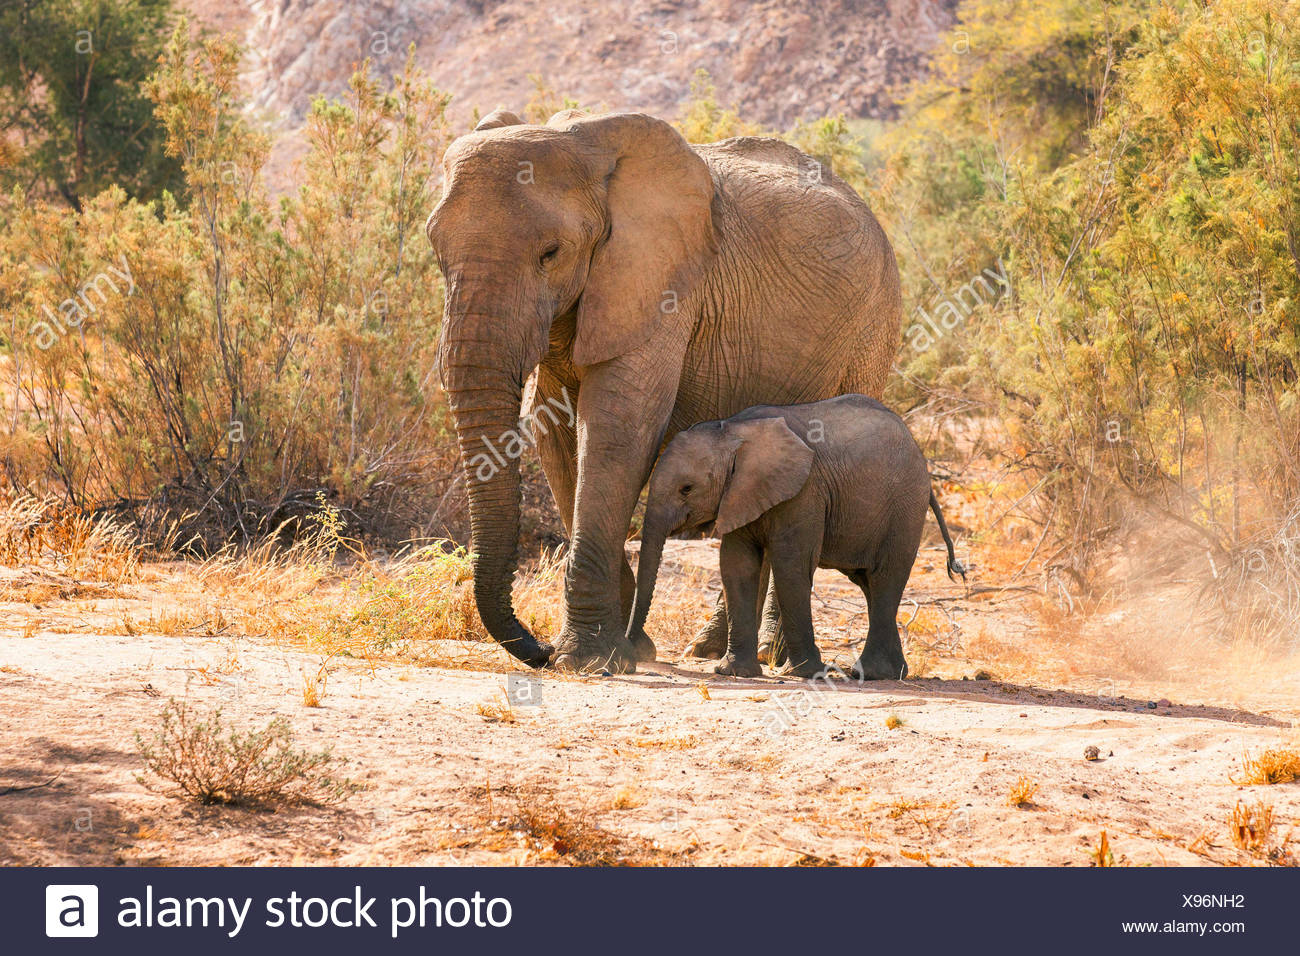 Desert elephant, Desert-dwelling elephant, African elephant (Loxodonta africana africana), Desert cow elephant with elephant calf at the dried up riverbed of the Huab River, Namibia, Damaraland - Stock Image